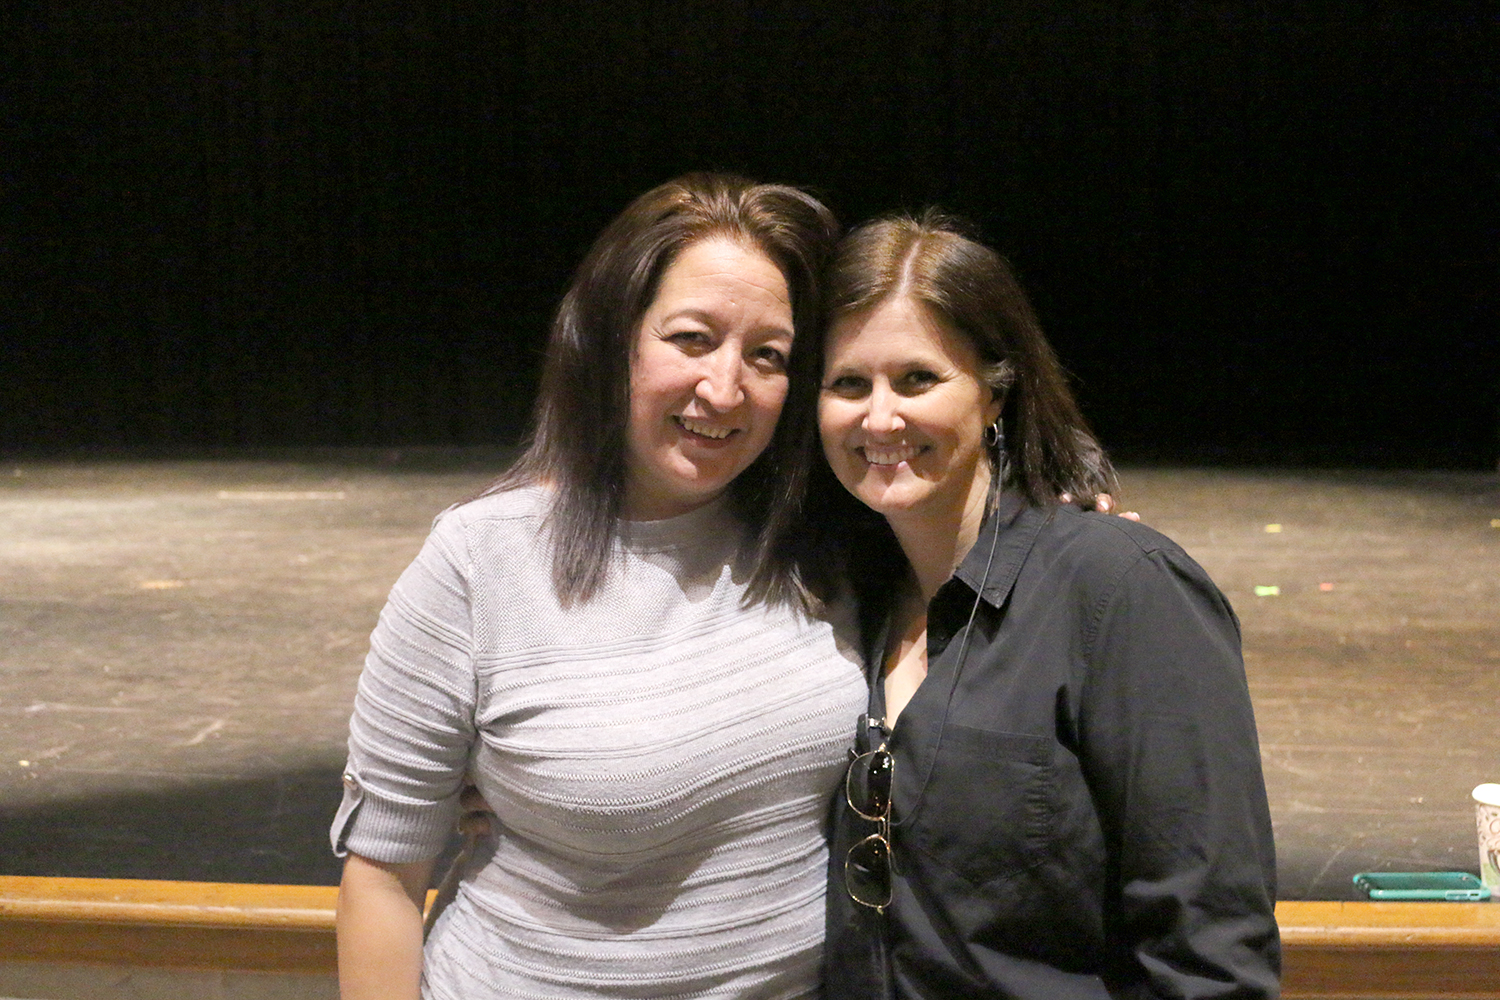 Tina Salazar (left) was announced as the interim principal of Akins High School on May 18. She is replacing Brandi Hosack (right) announced she will be leaving at the end of the school year. Salazar has worked at Akins for 10 years, serving as an English teacher, coach and assistant principal of the Social Services Academy.